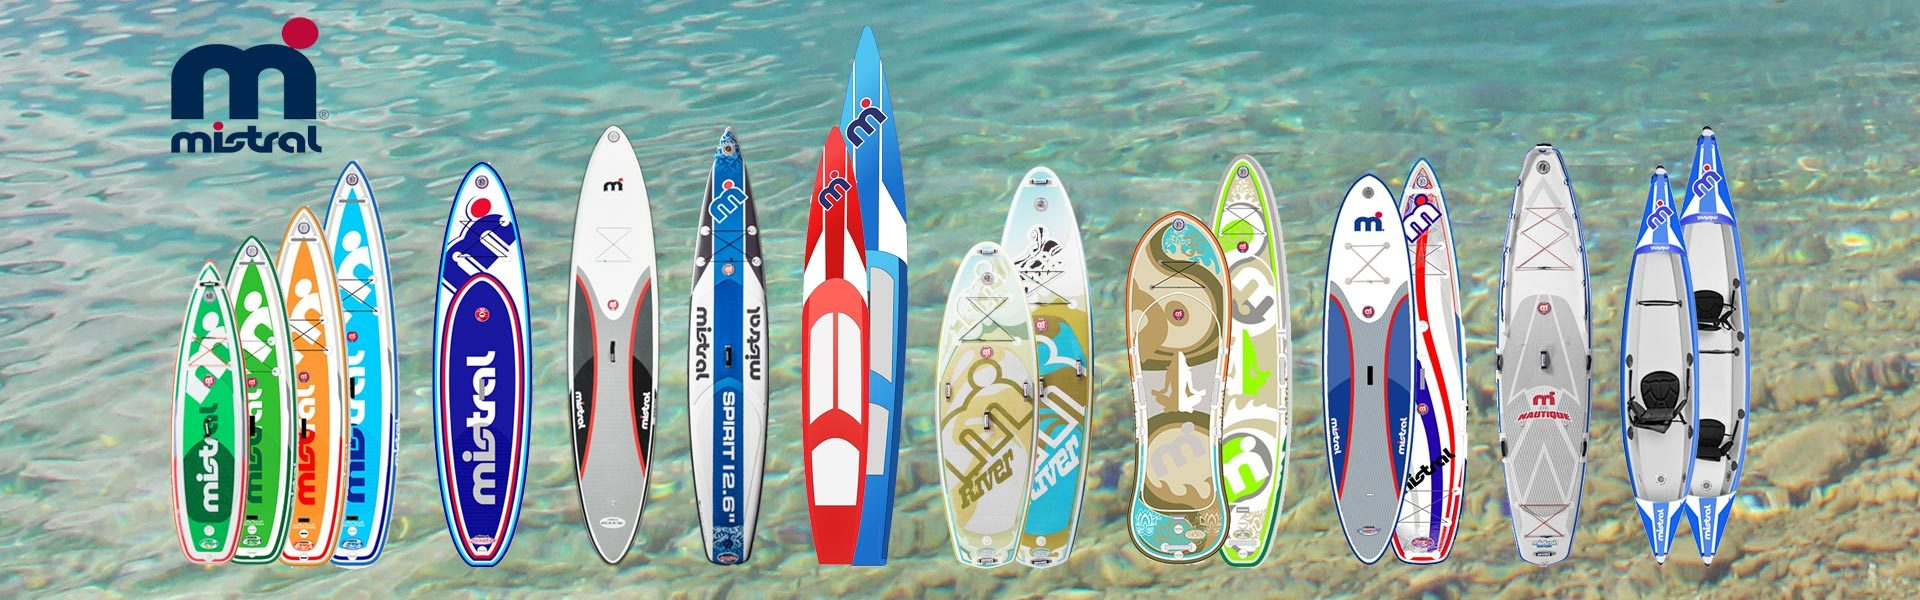 mistral-inflatable-sup-boards_1